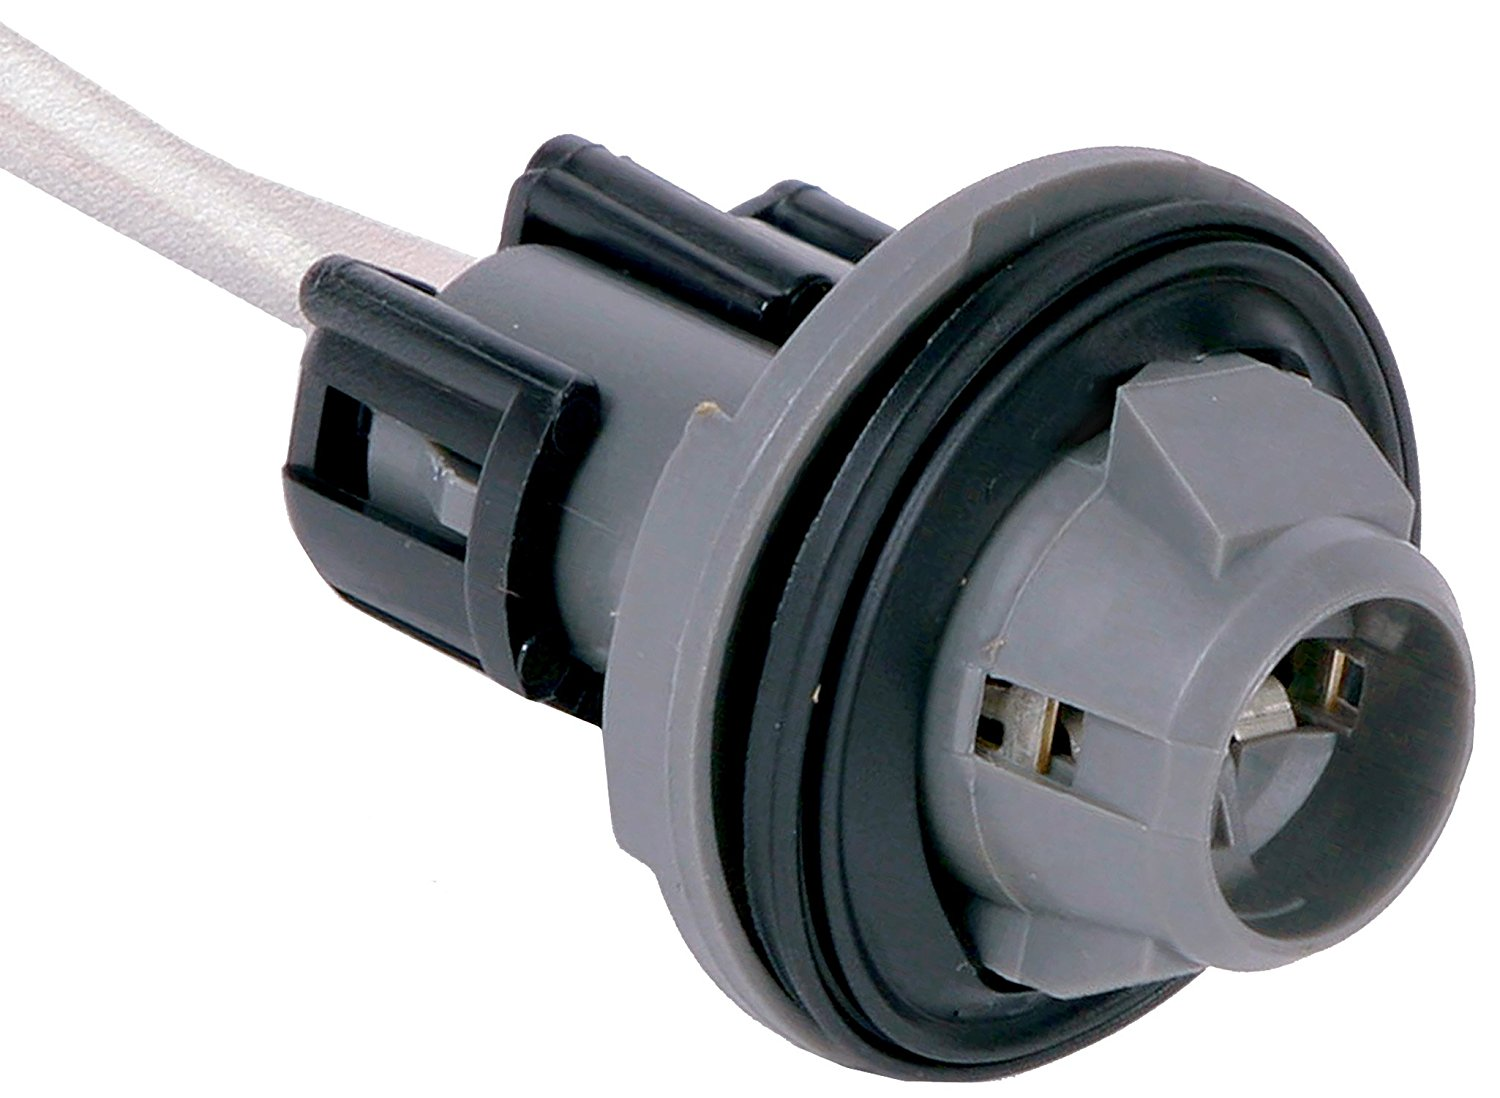 Ls44 Gm Original Equipment Gray Multi Purpose Lamp Socket Cnc Wiring Harness Connectors Allow For More Efficient Less Costly Repairs On All